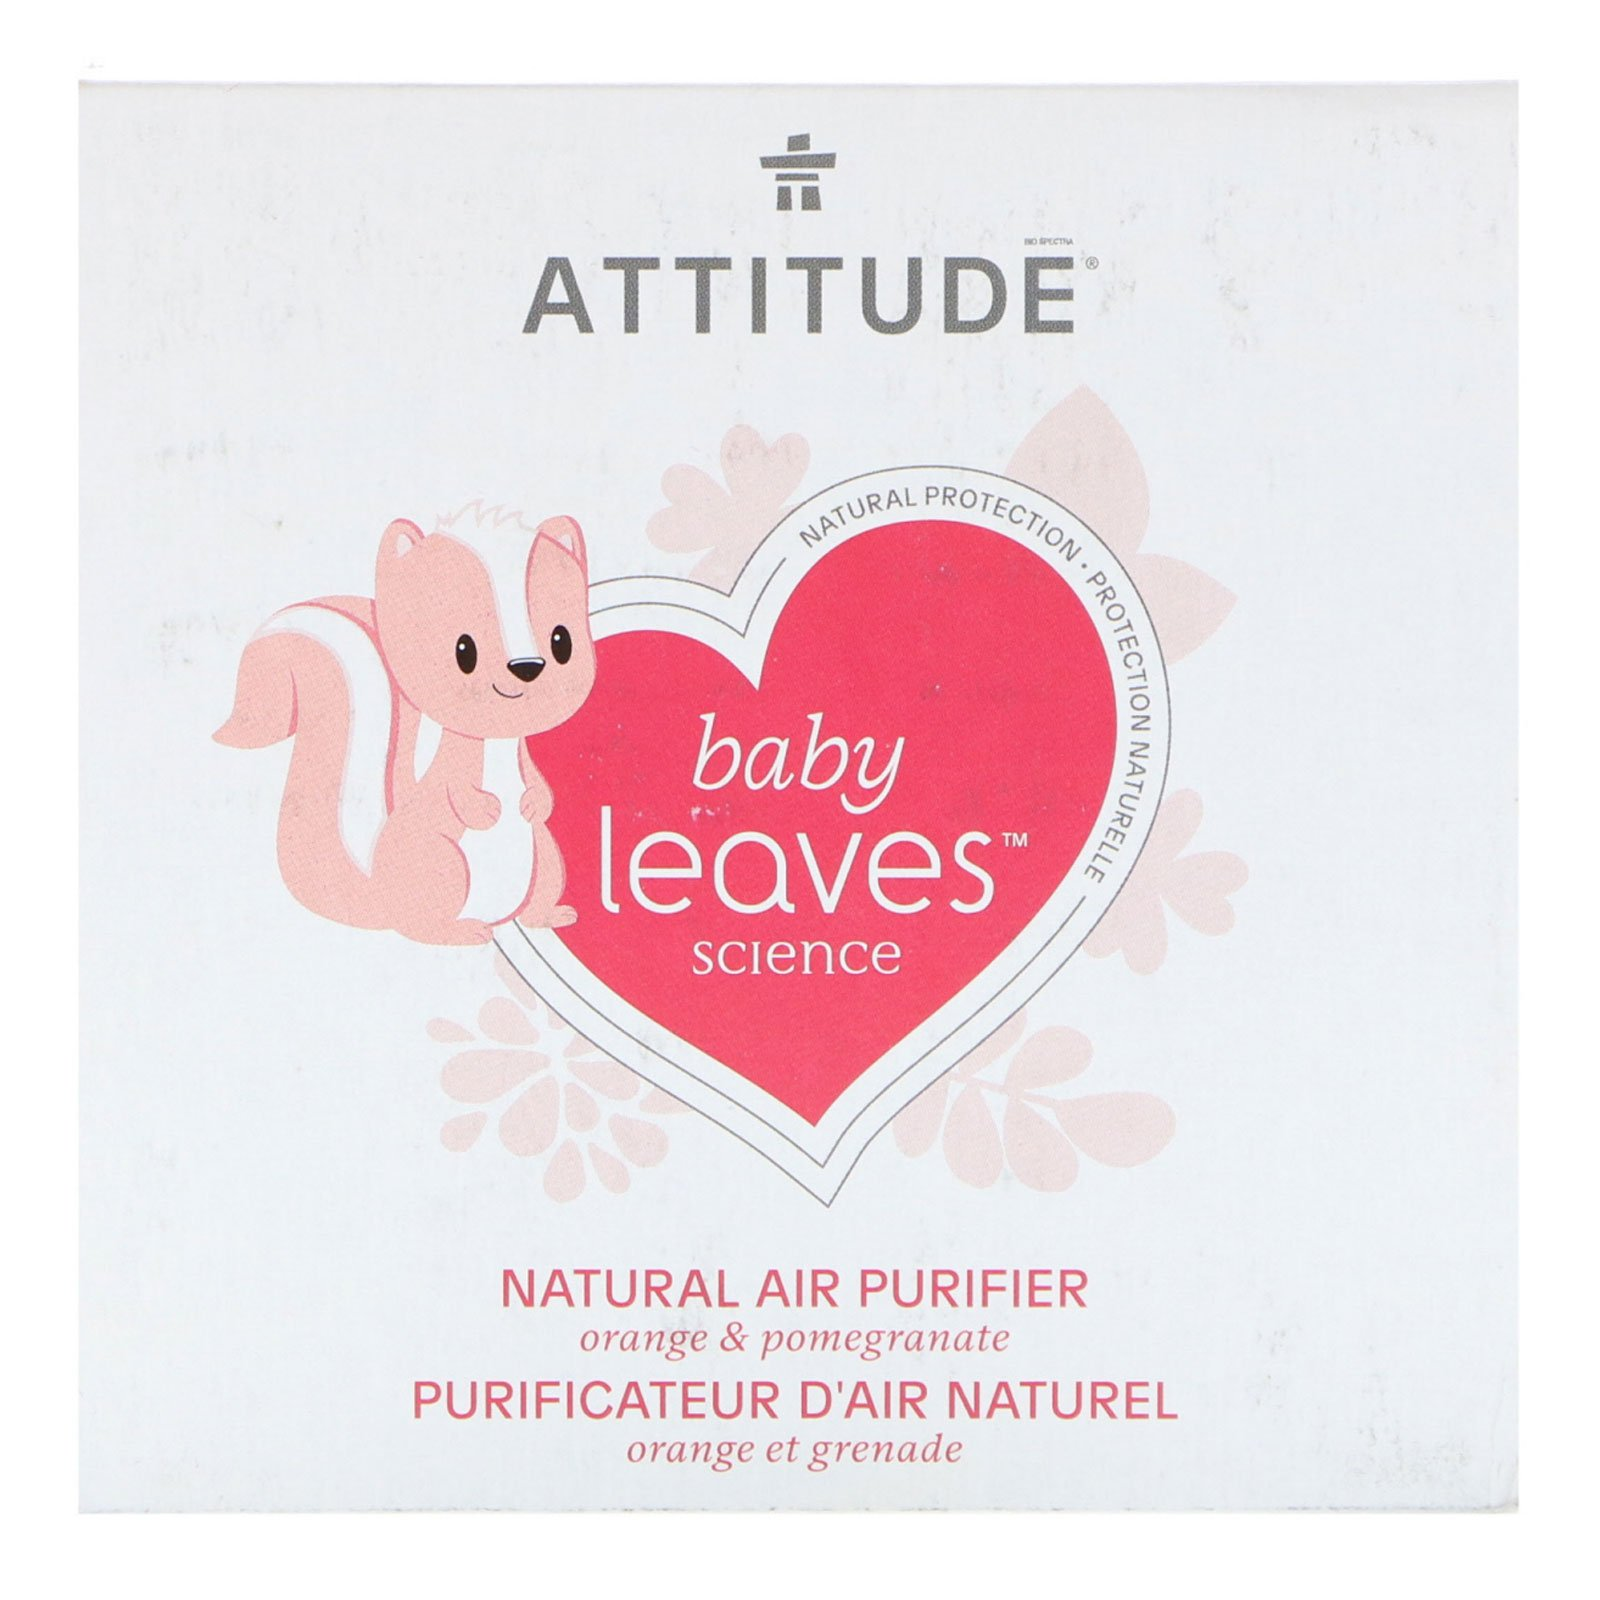 ATTITUDE Natural Air Purifier with Activated Carbon Filter | Traps Air Polluants and Contaminants, Neutralizes Stubborn Odors | Baby Leaves Science Collection | Orange & Pomegranate (8 oz)